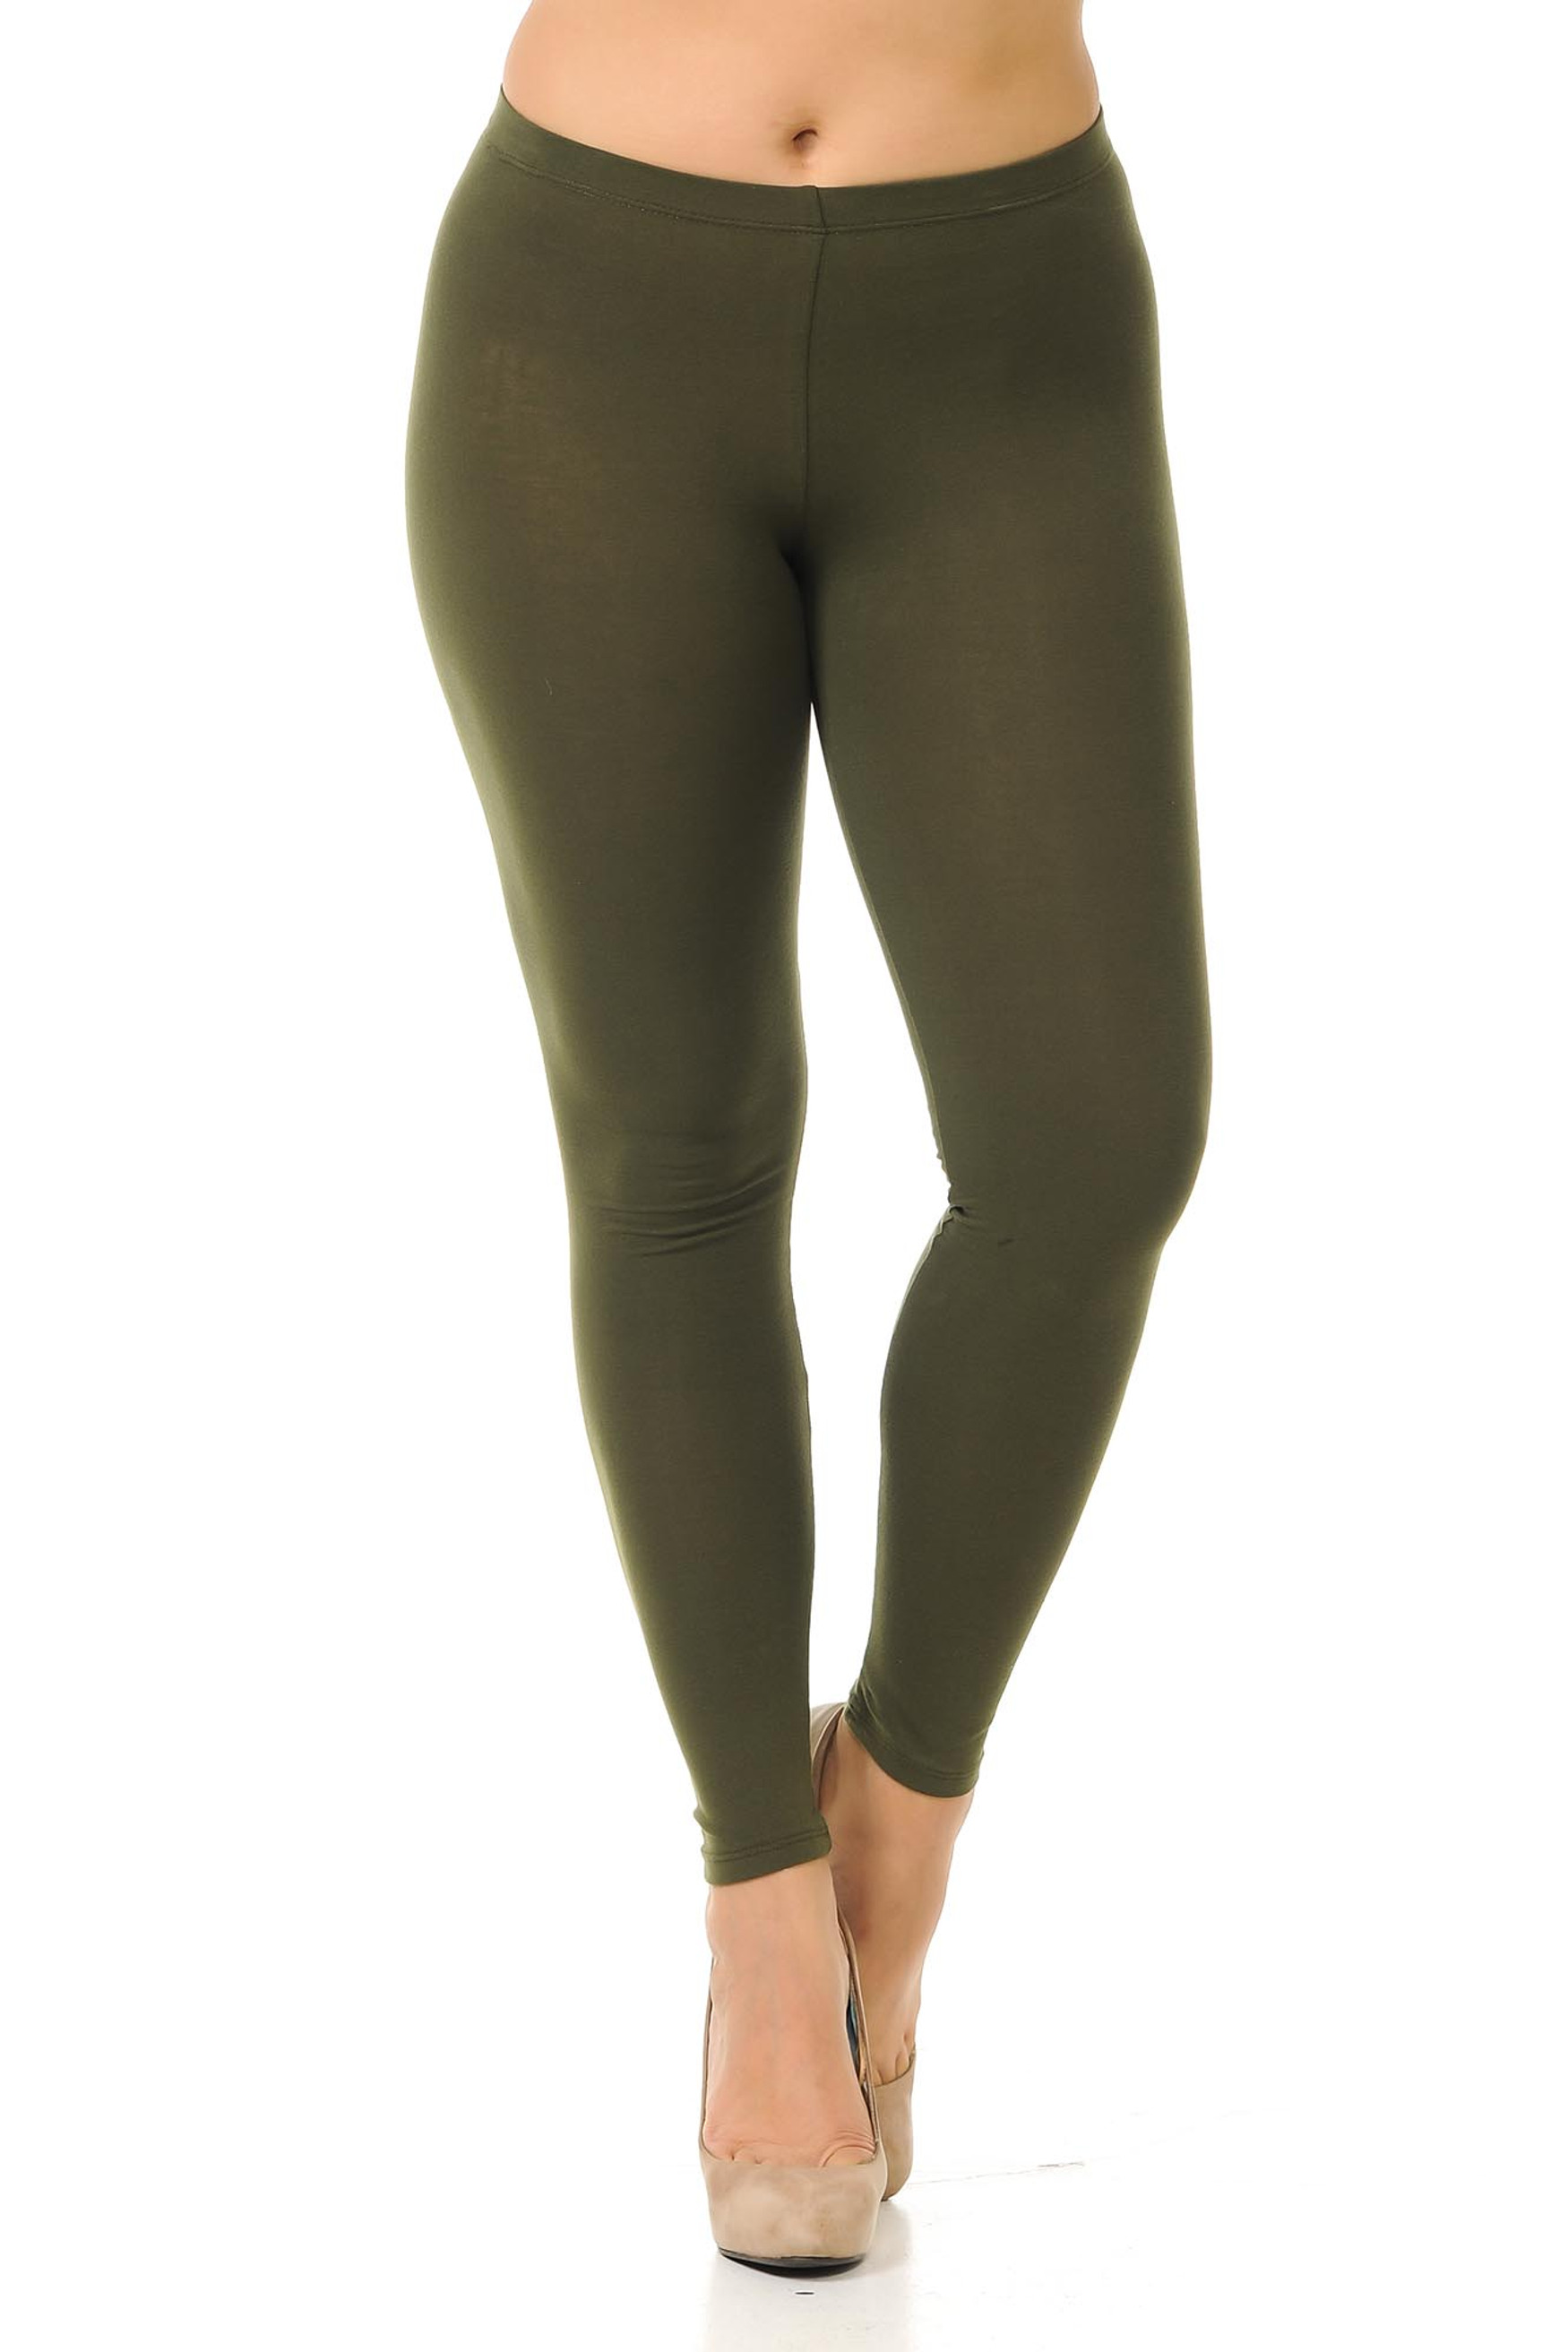 Front facing image of olive made in the USA cotton full length leggings made to fit sizes XL-3XL